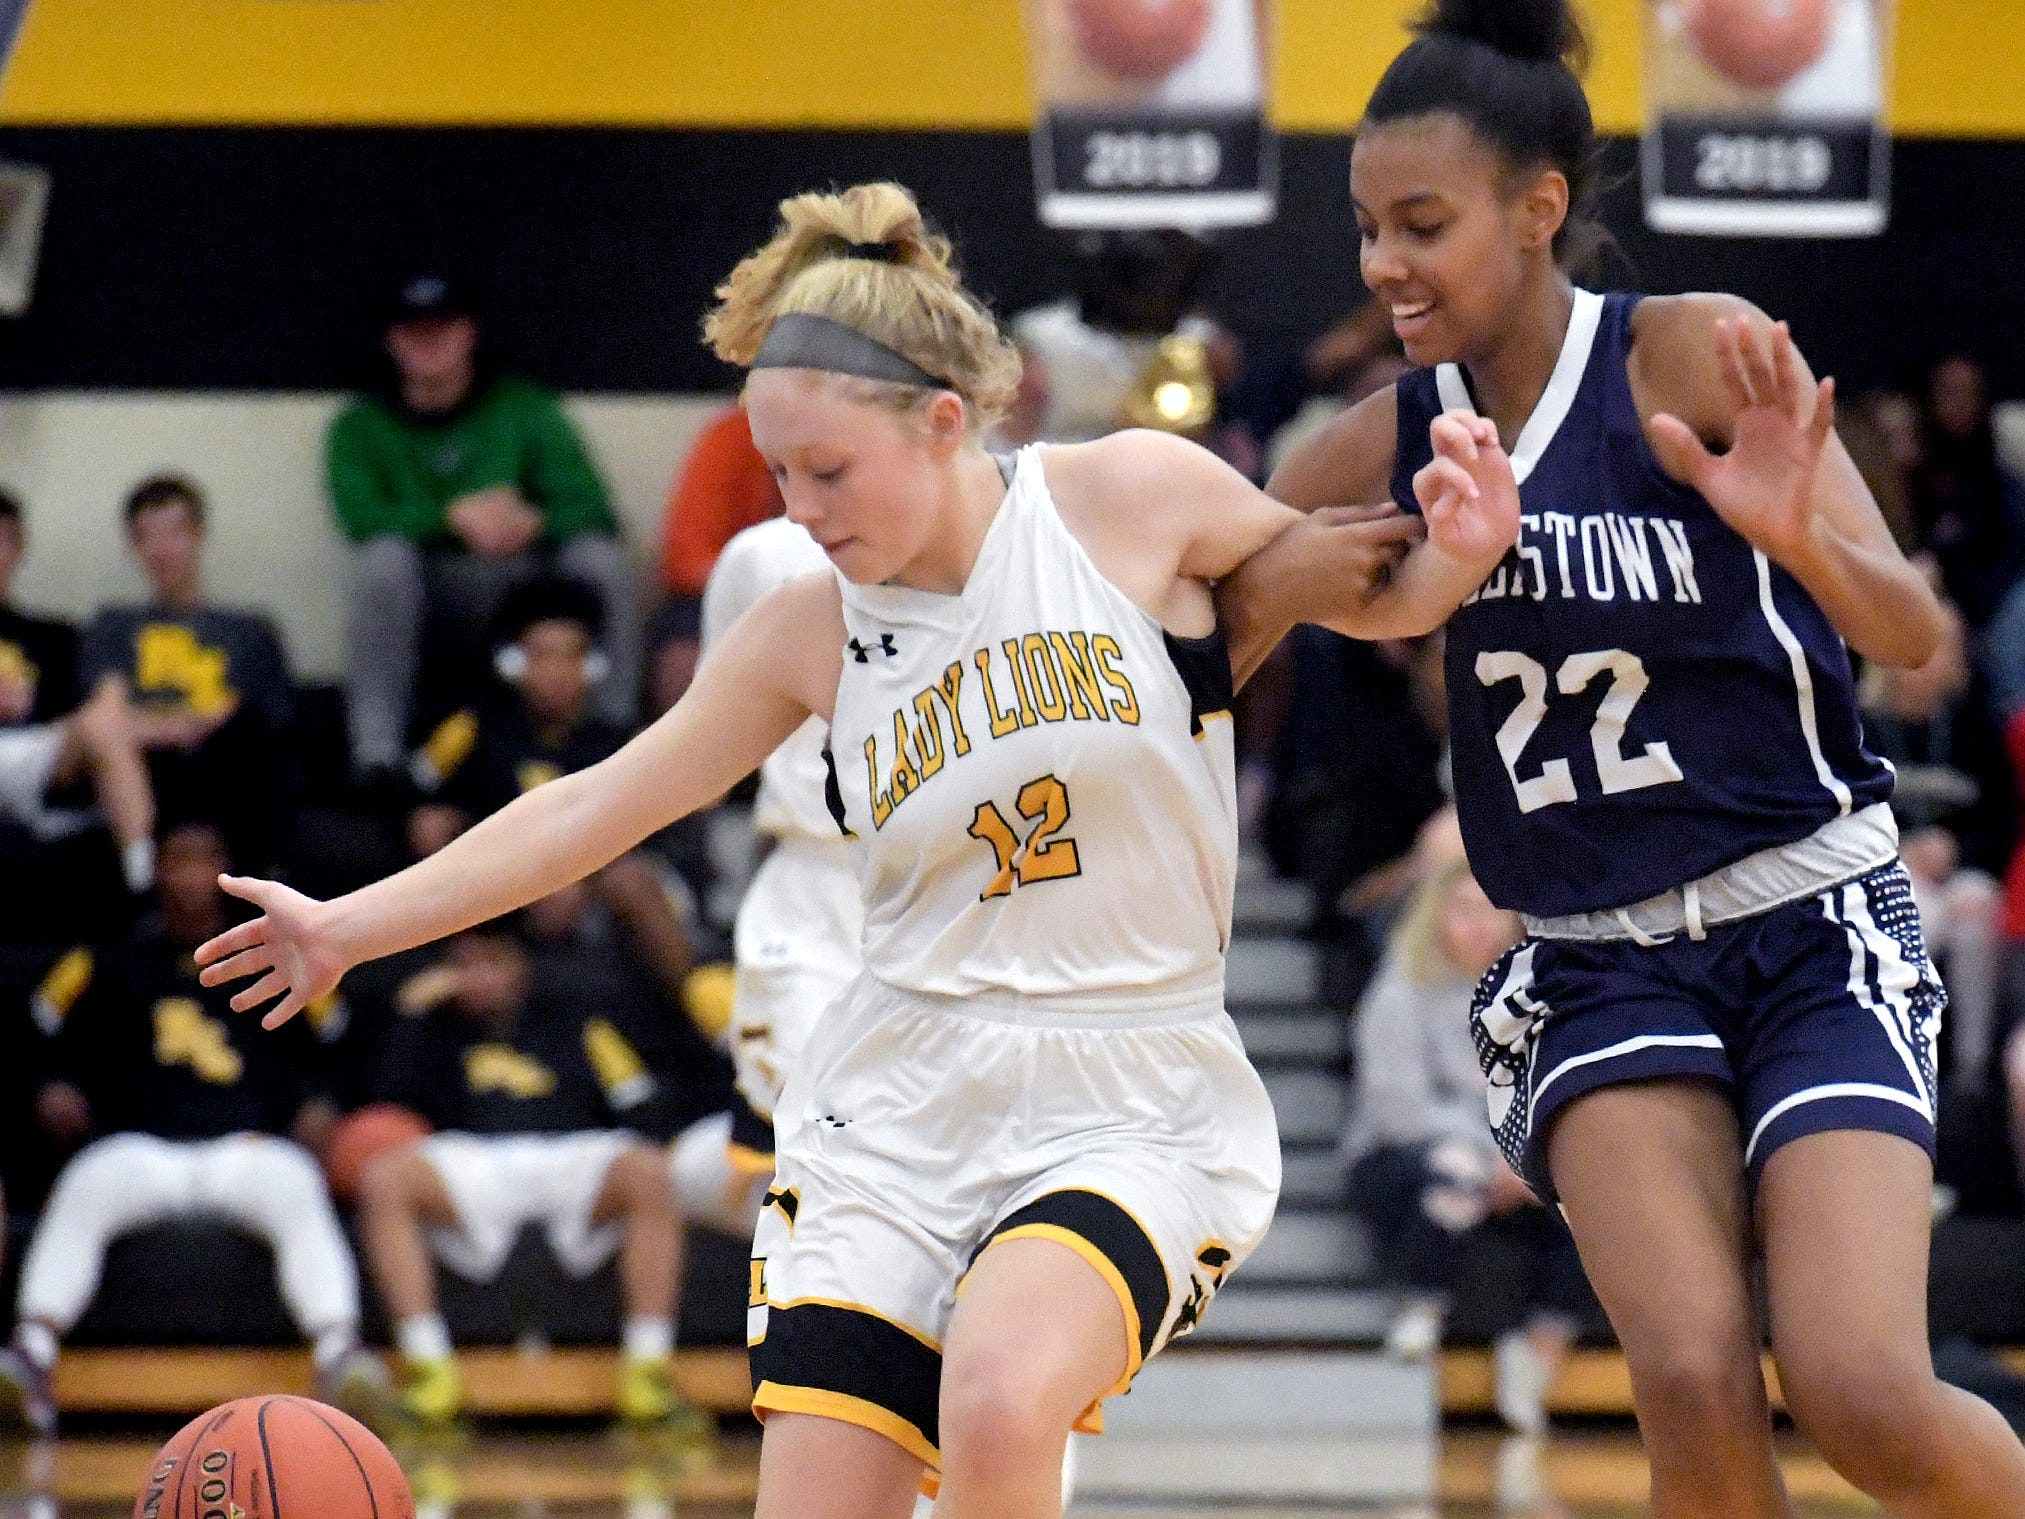 Dallastown earns a 38-28 win over host Red Lion to clinch an outright York-Adams Division I title Tuesday, Feb. 5, 2019. Bill Kalina photo